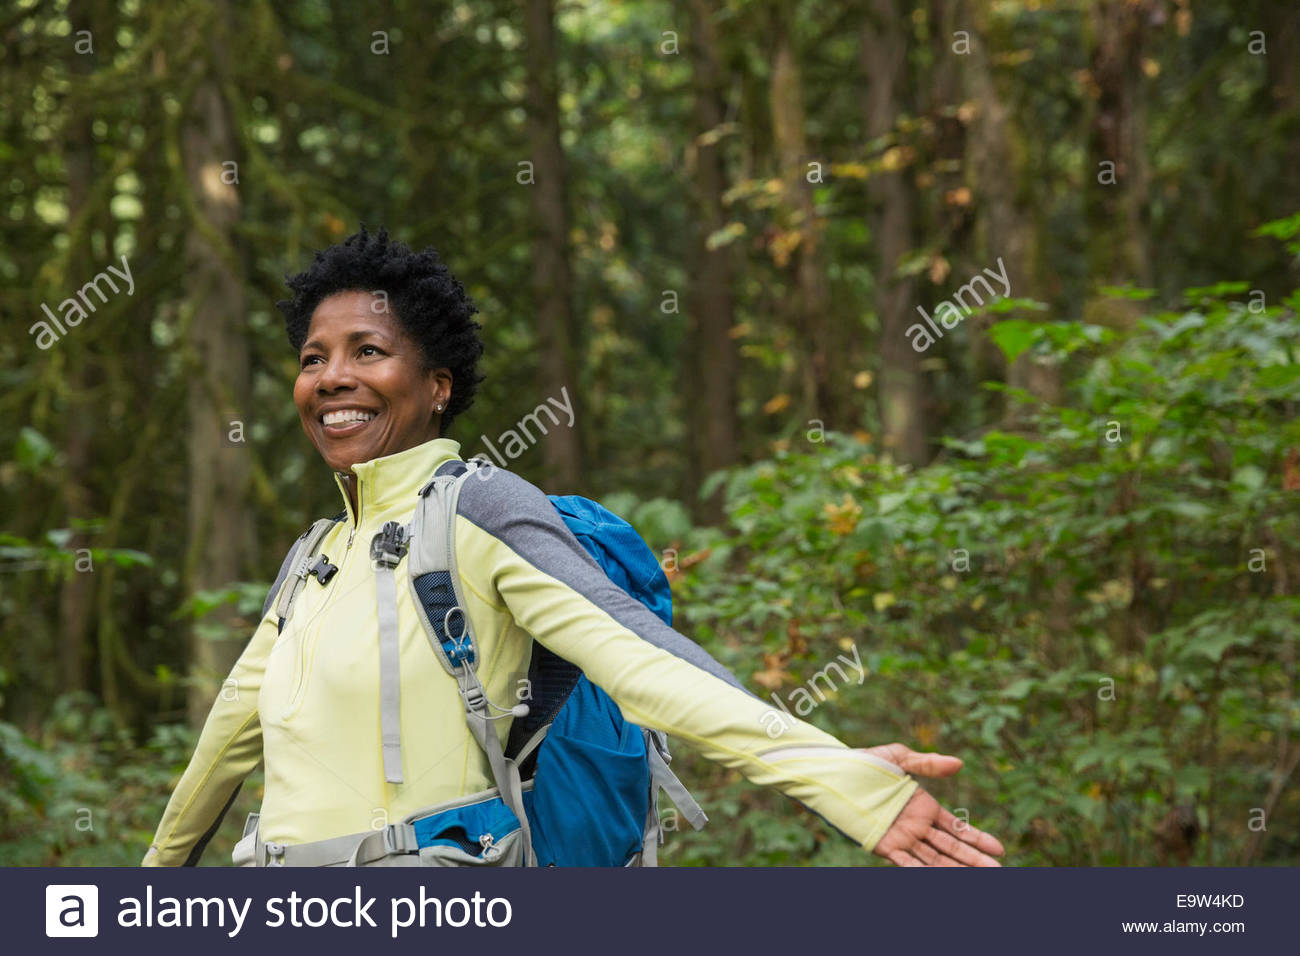 Smiling woman with arms outstretched in woods - Stock Image